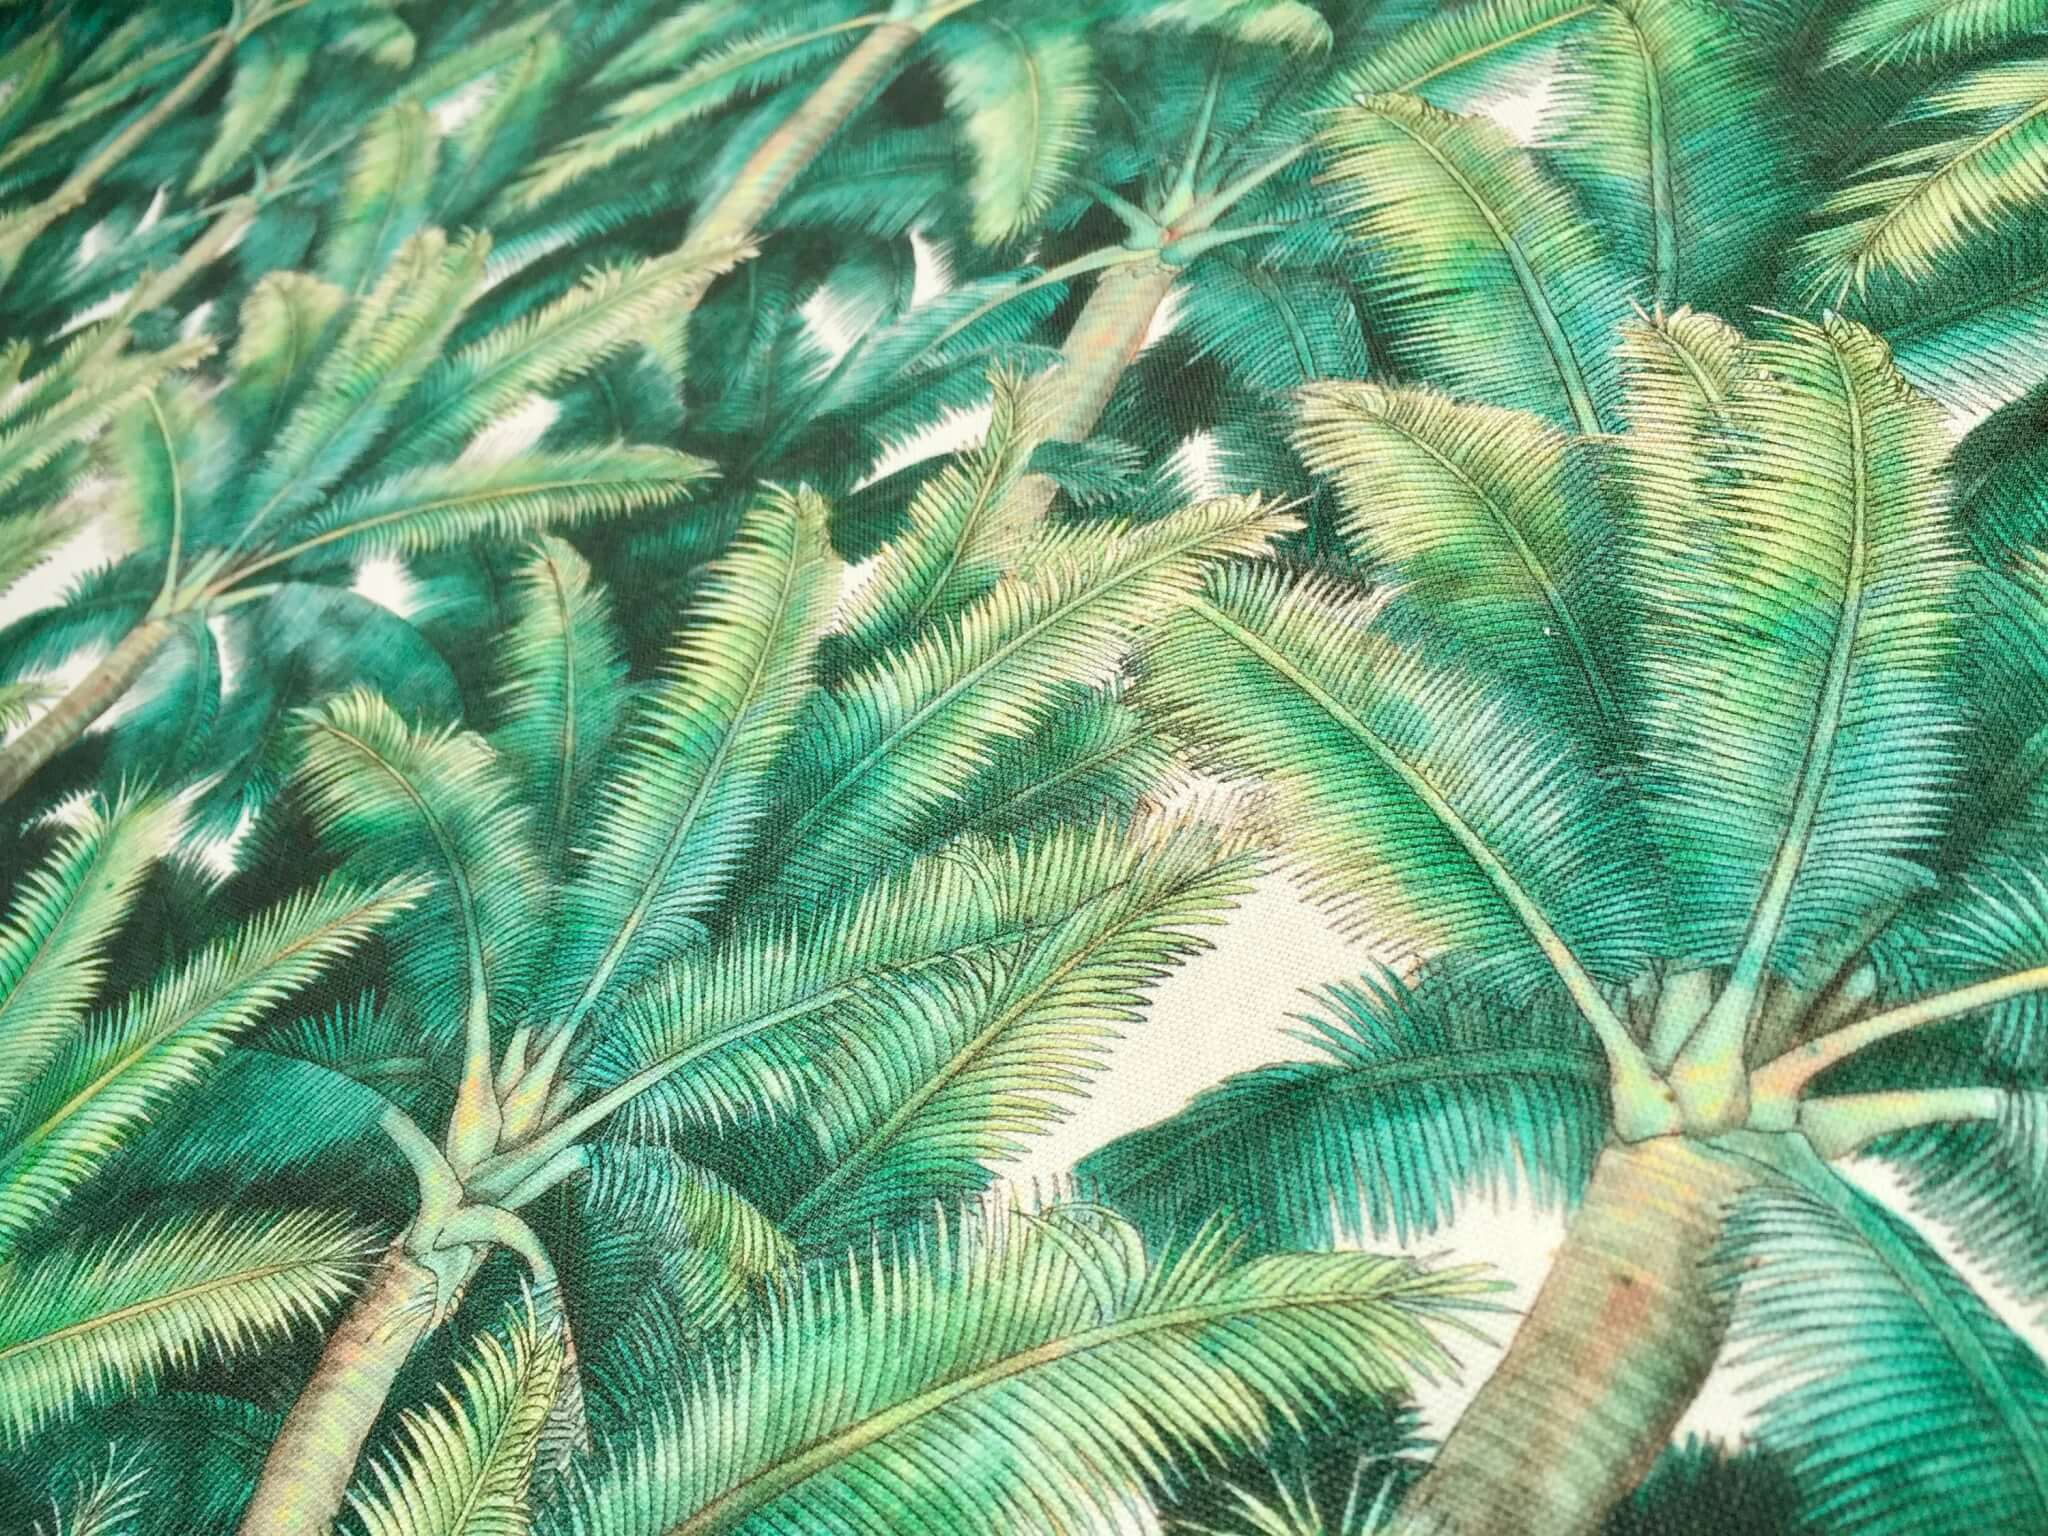 palms-palm-fronds-leaf-tree-fabric-tropical-leaves-material-for-curtains-upholstery-home-decor-digital-print-fabric-275cm-108-wide-5d4da05e1.jpg